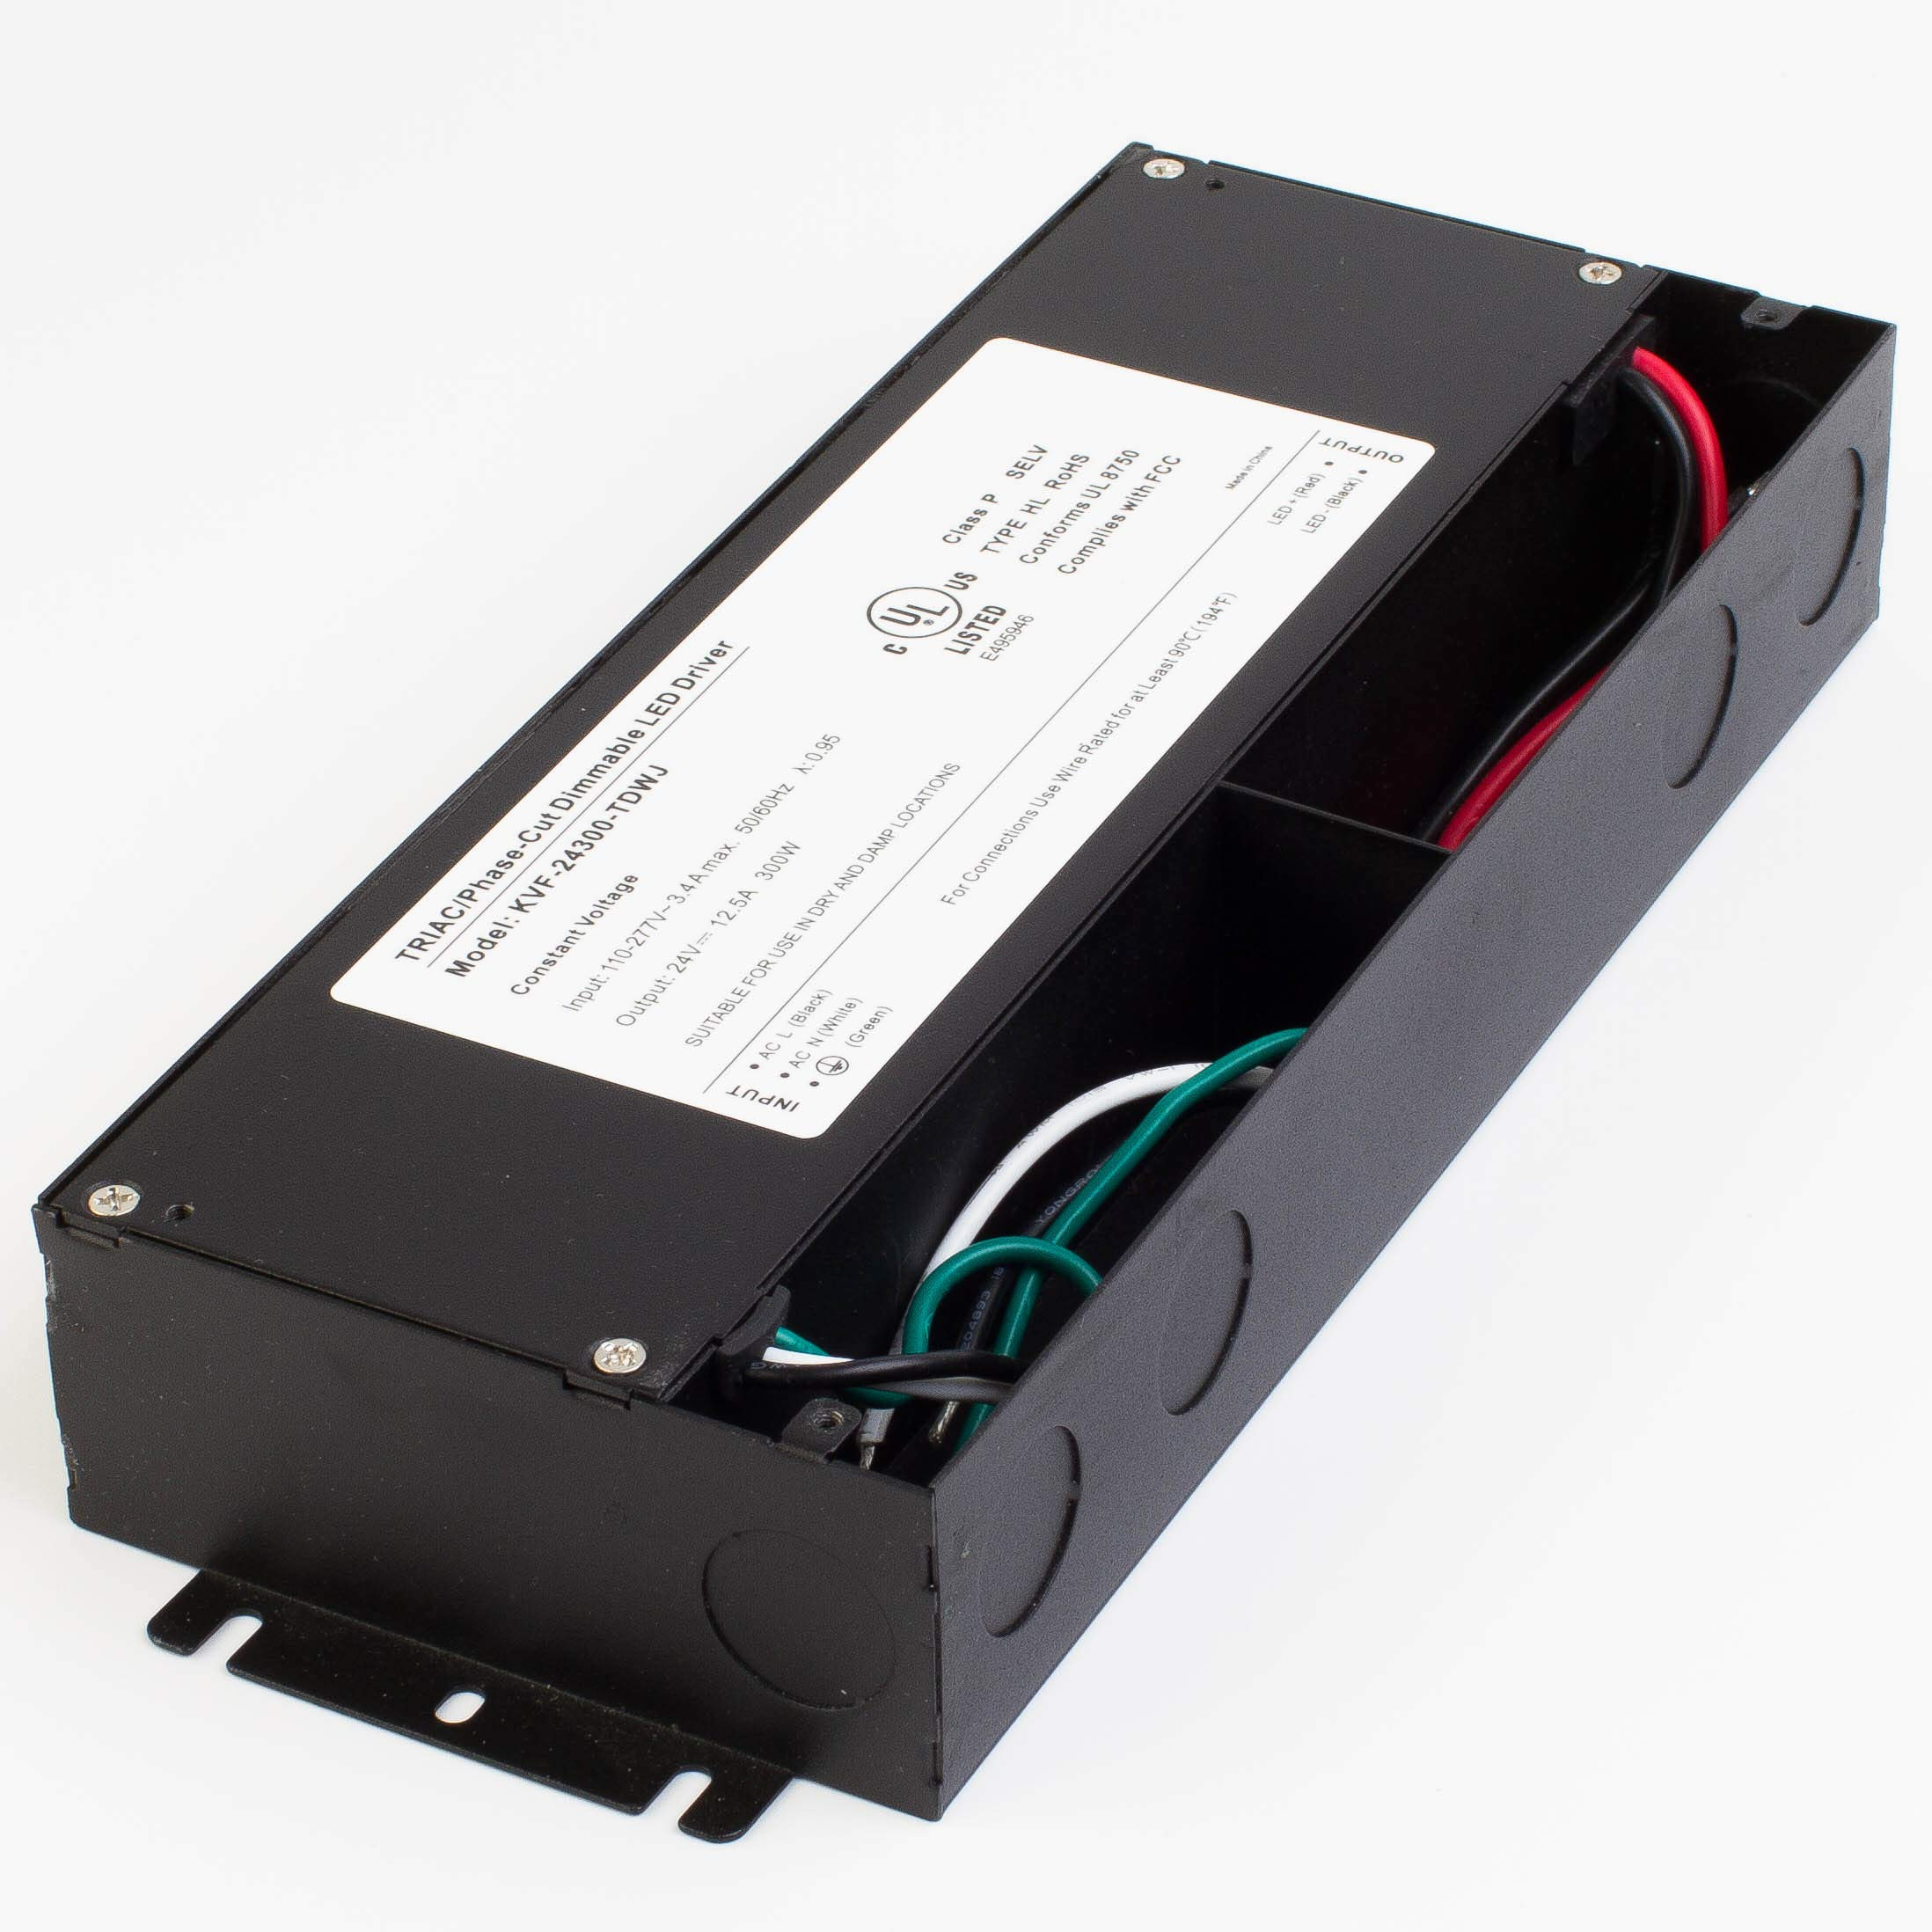 LEDupdates 24v UL Listed 300w Triac Dimmable Driver 110v - 277V AC to DC Transformer Constant Voltage Power Supply for LED Strip light Control by AC Wall Dimmer (24v 300w) by LEDUPDATES (Image #3)